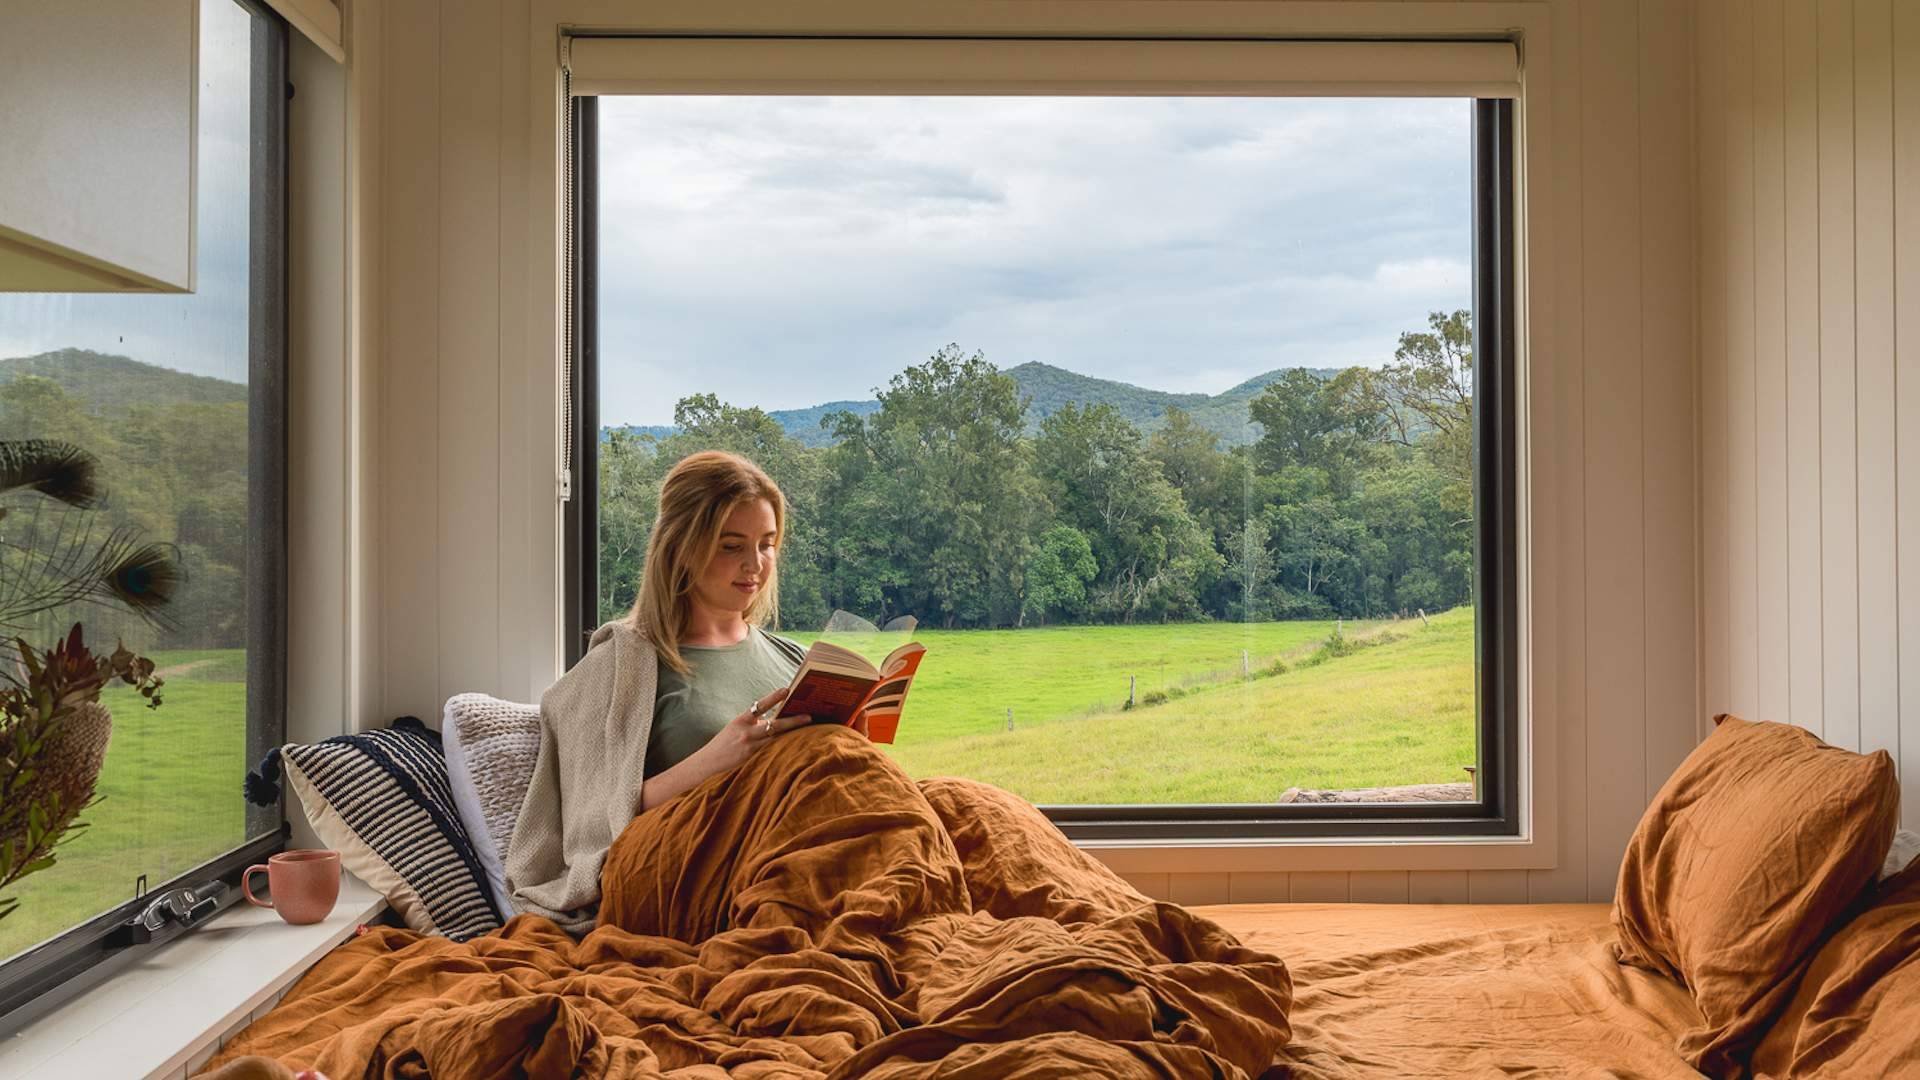 Three New Off-The-Grid Tiny Houses Have Landed in Regional NSW